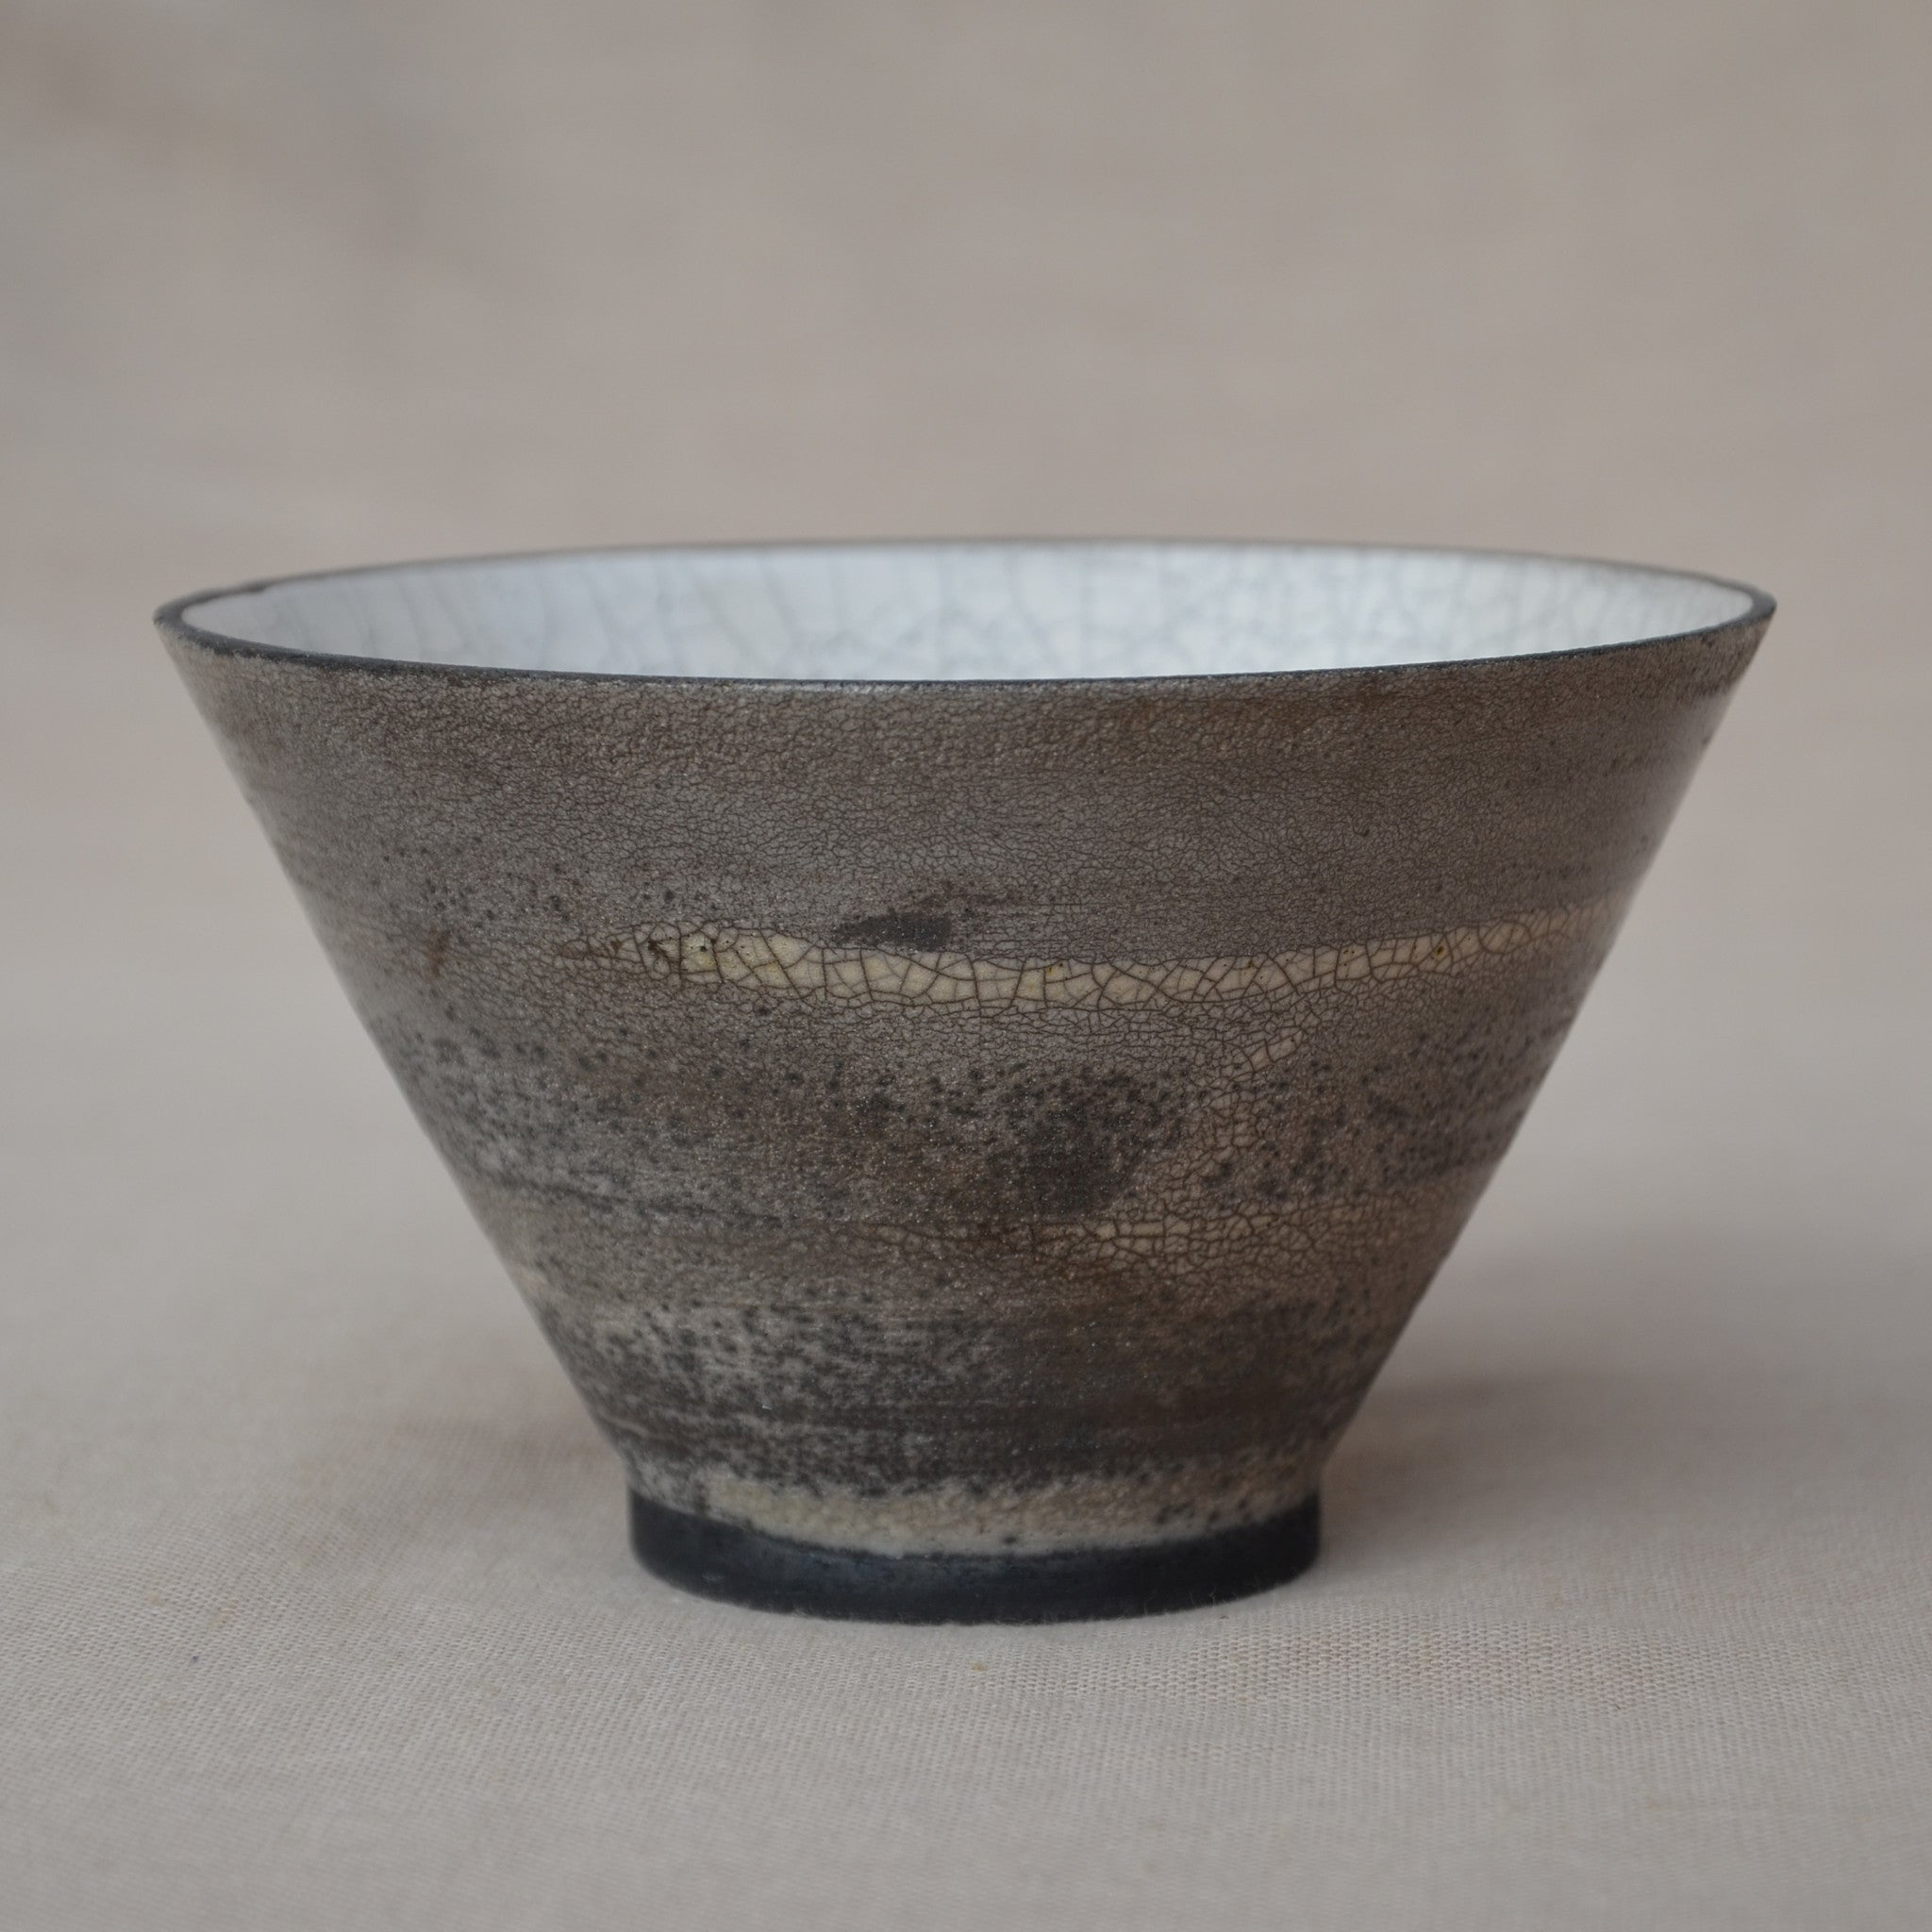 Medium conical Raku bowl